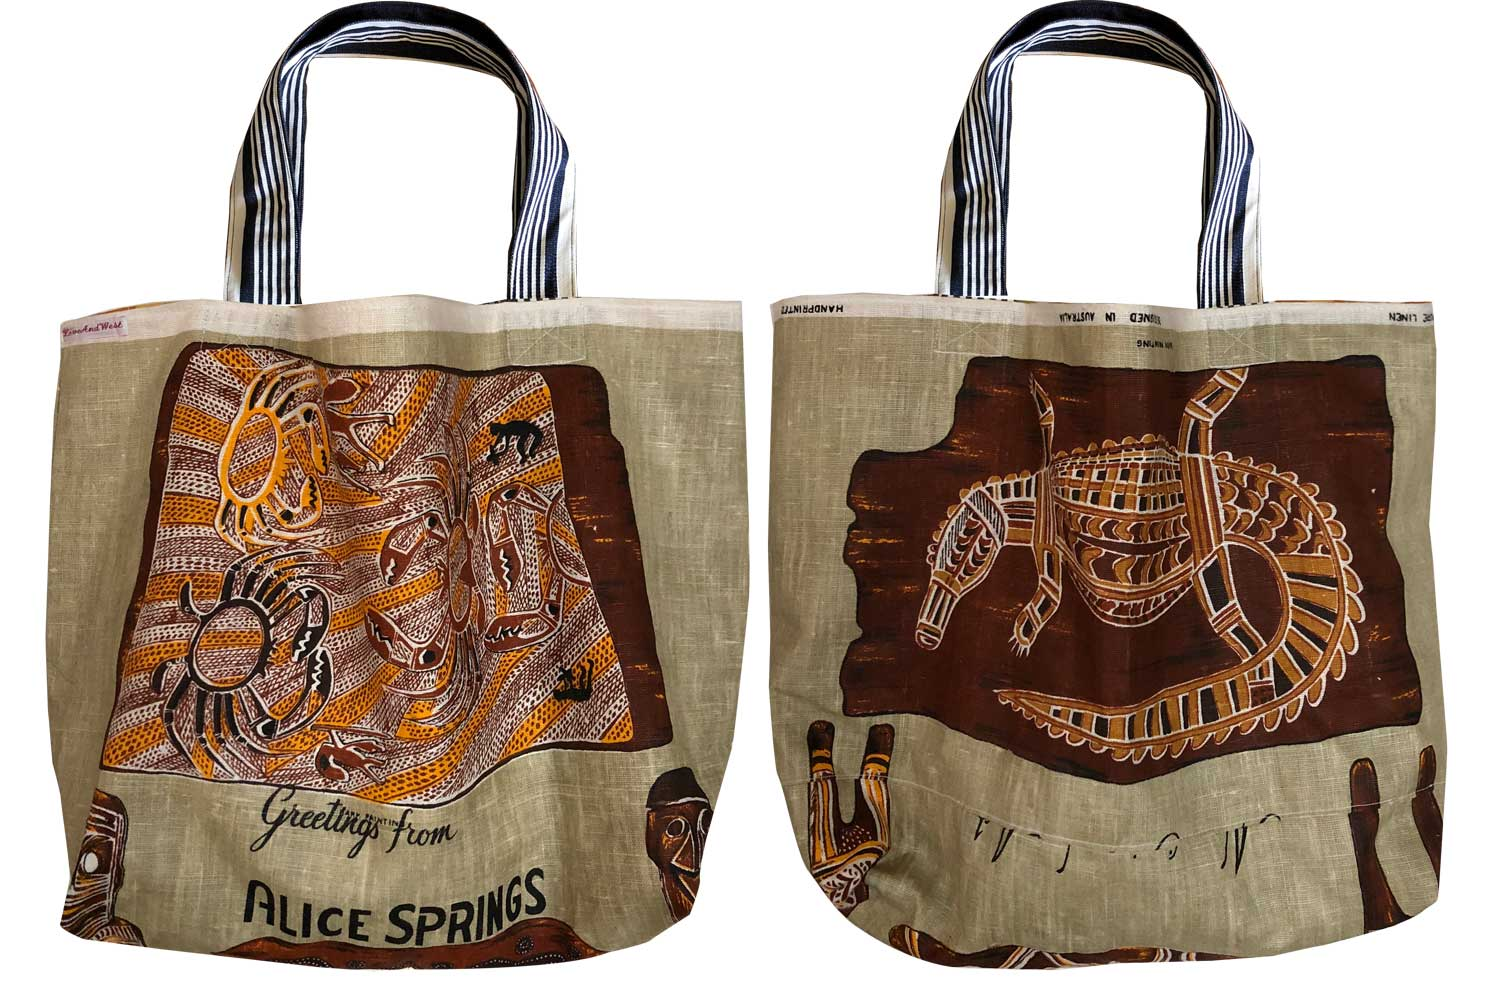 Alice Springs teatowel tote bag